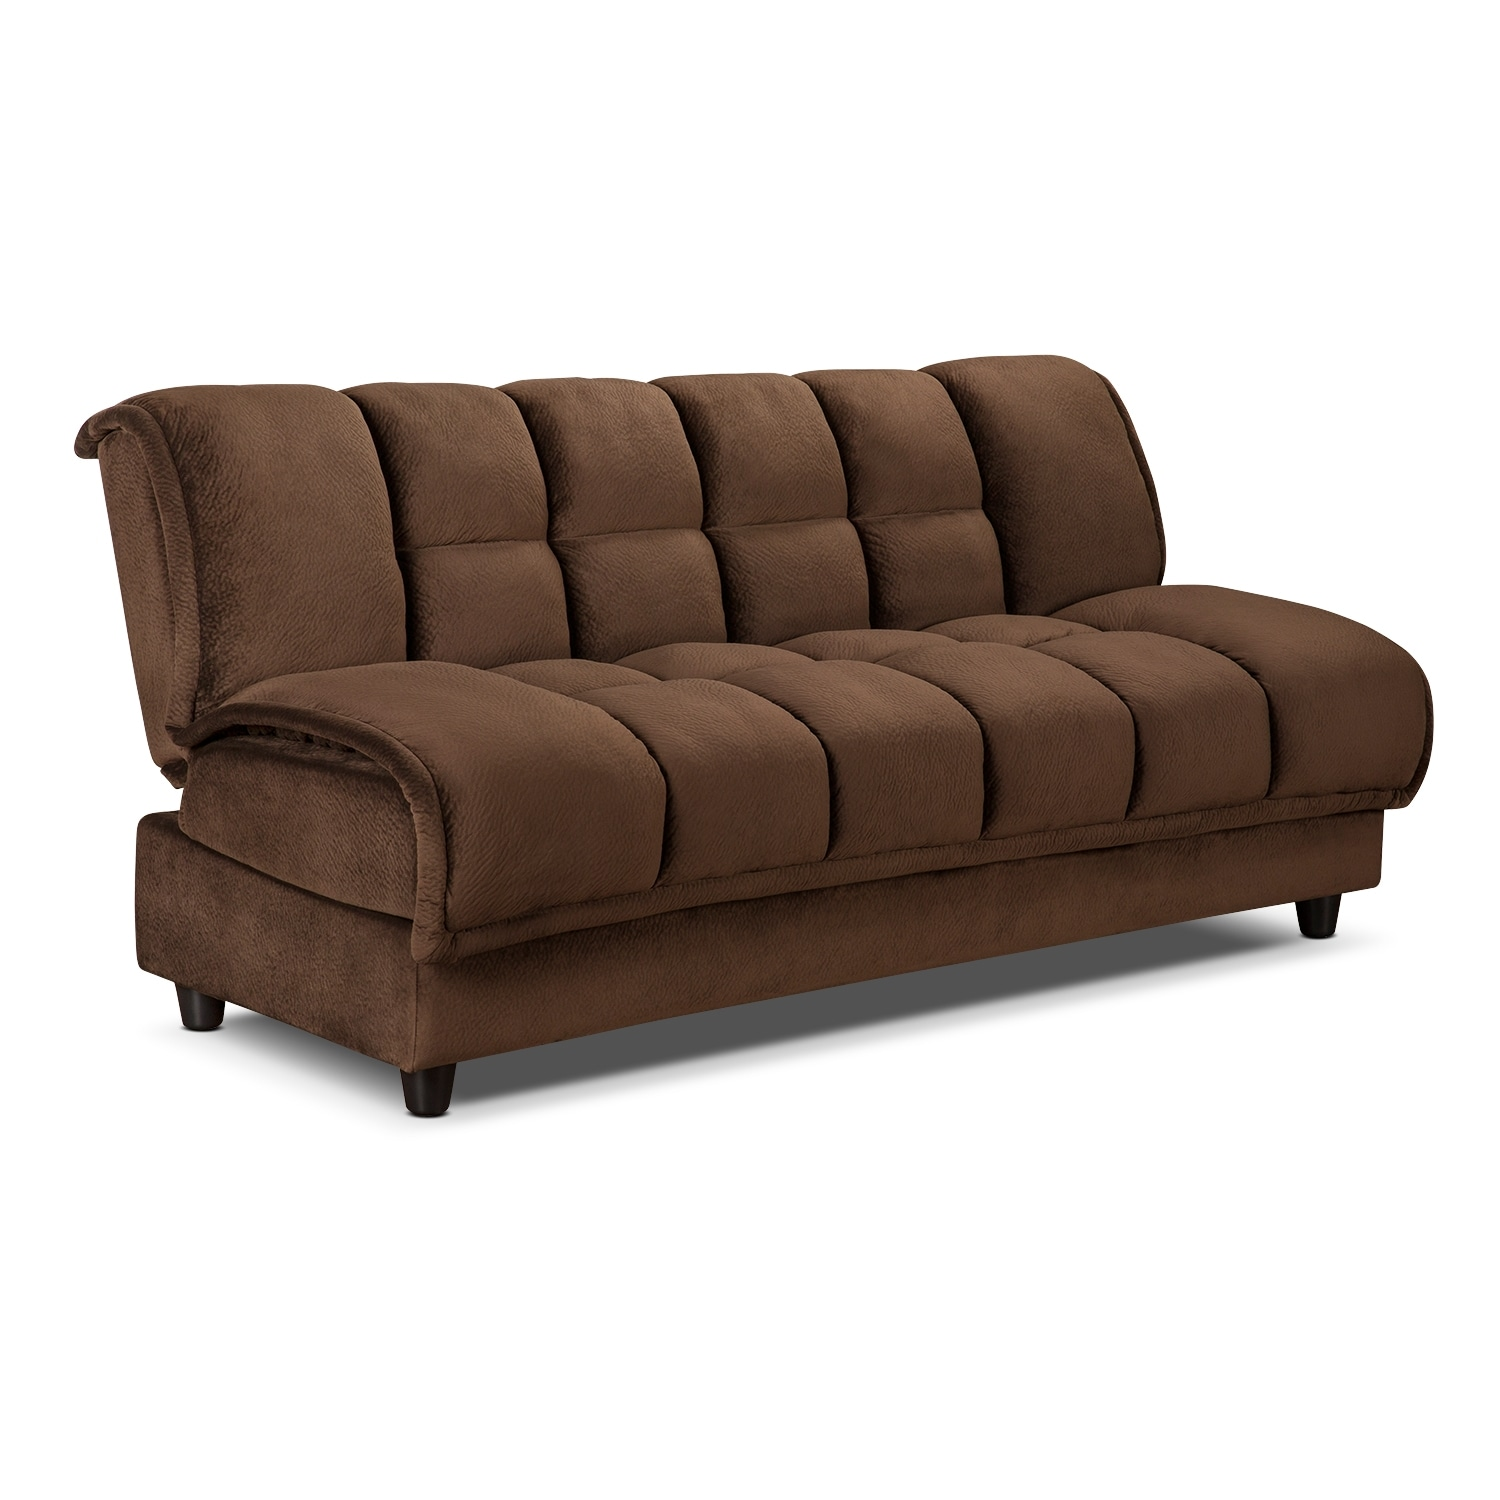 Bennett futon sofa bed espresso american signature furniture Couches bed